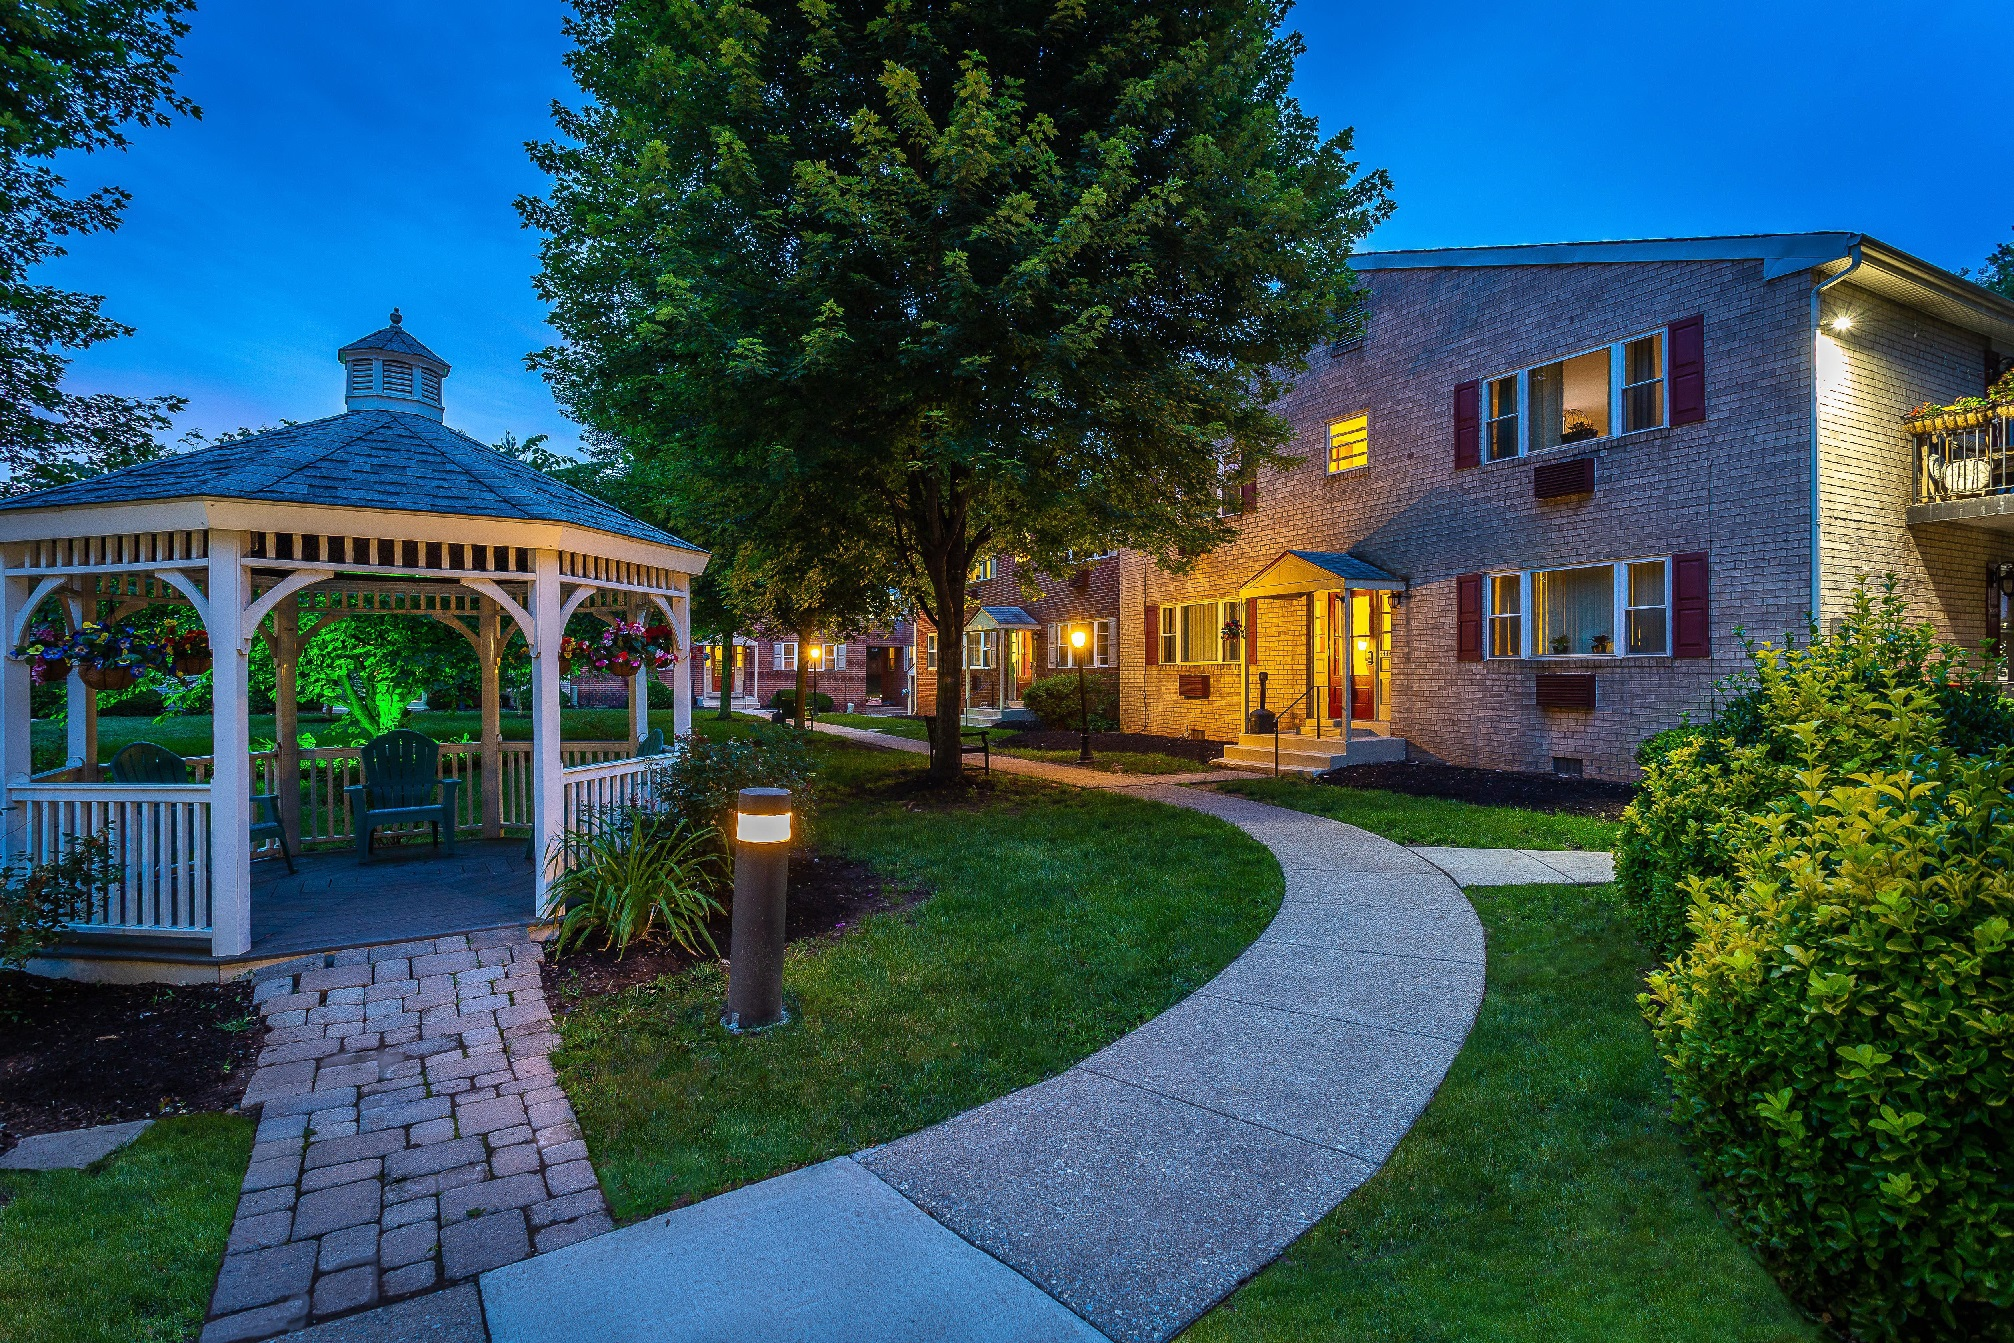 Gazebo and walkway to residential buildings at Westgate Arms apartments for rent in Jeffersonville, PA